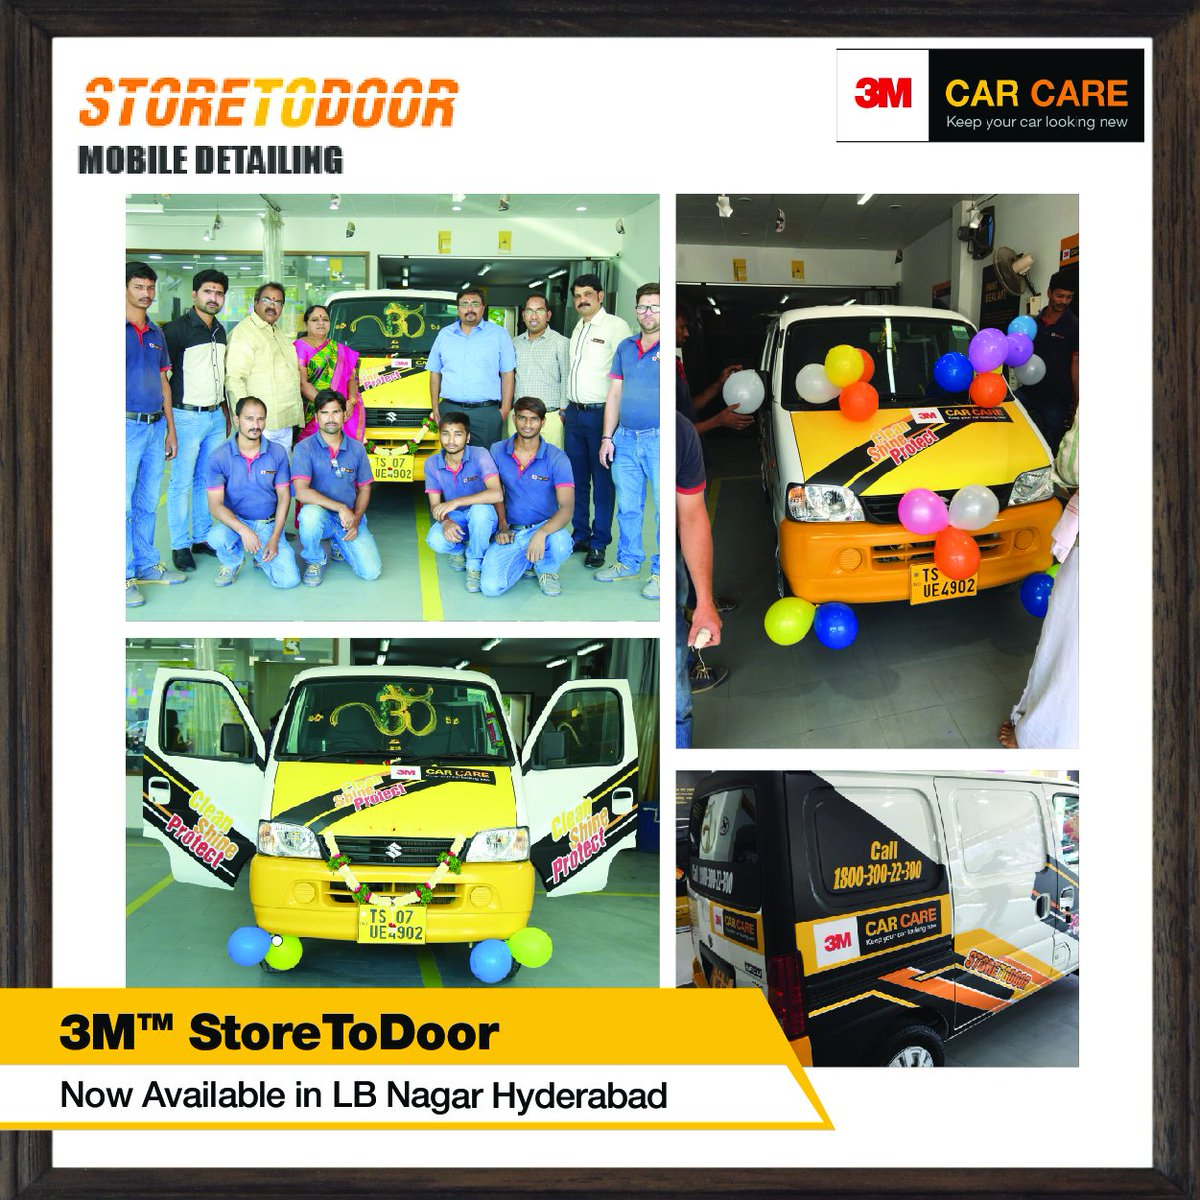 3m Car Care India On Twitter We Ve Opened Our First Store To Door